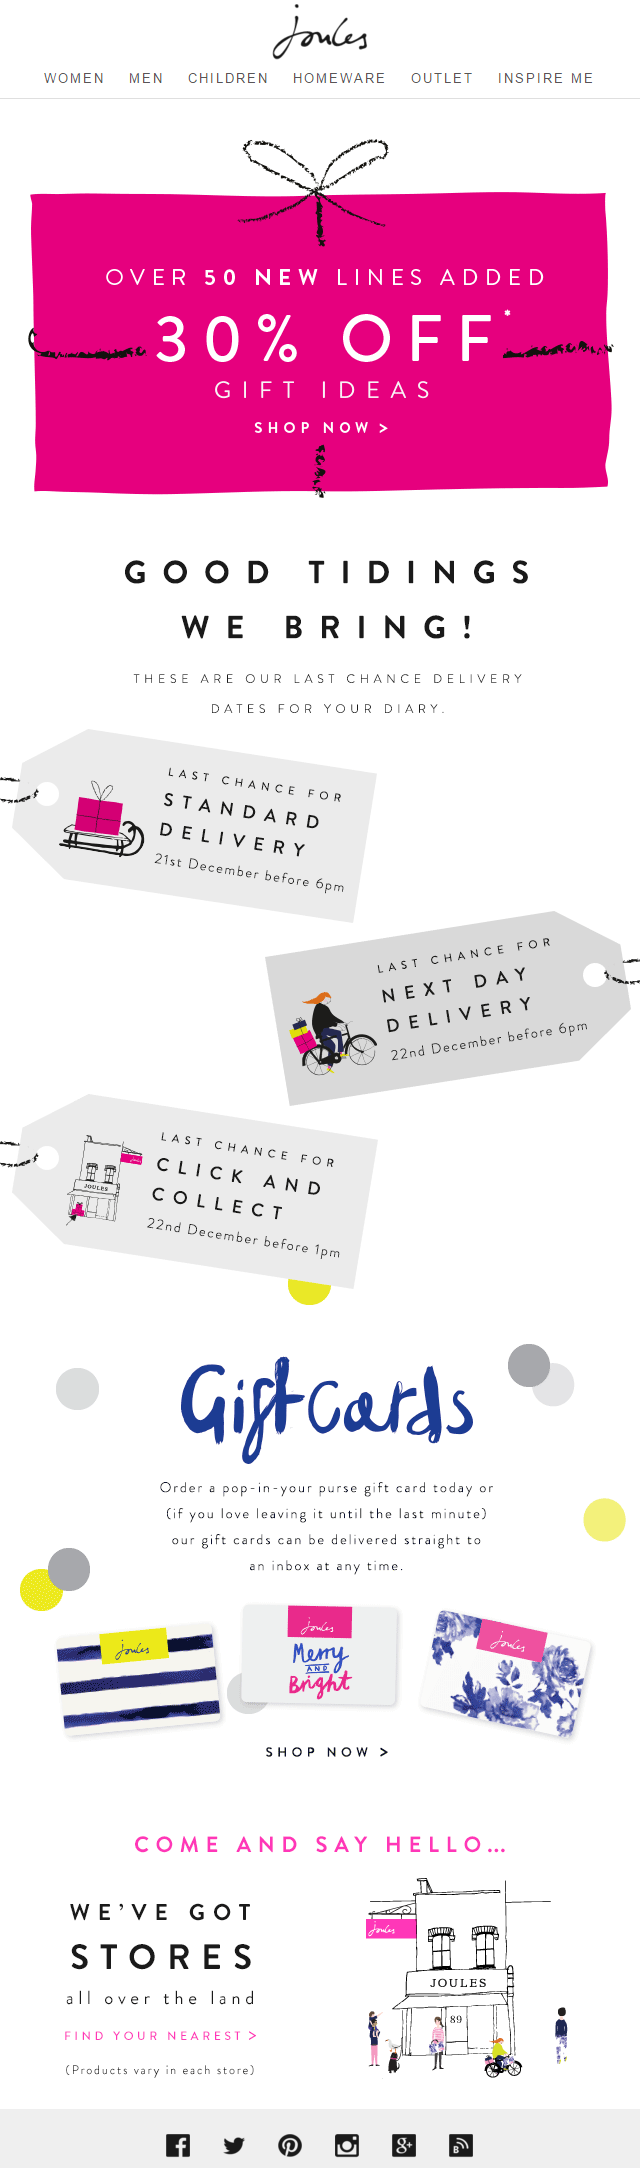 Joules Christmas Shipping Email 30 Off Gift Ideas Christmas Marketing Typography Hand Drawn Gifts